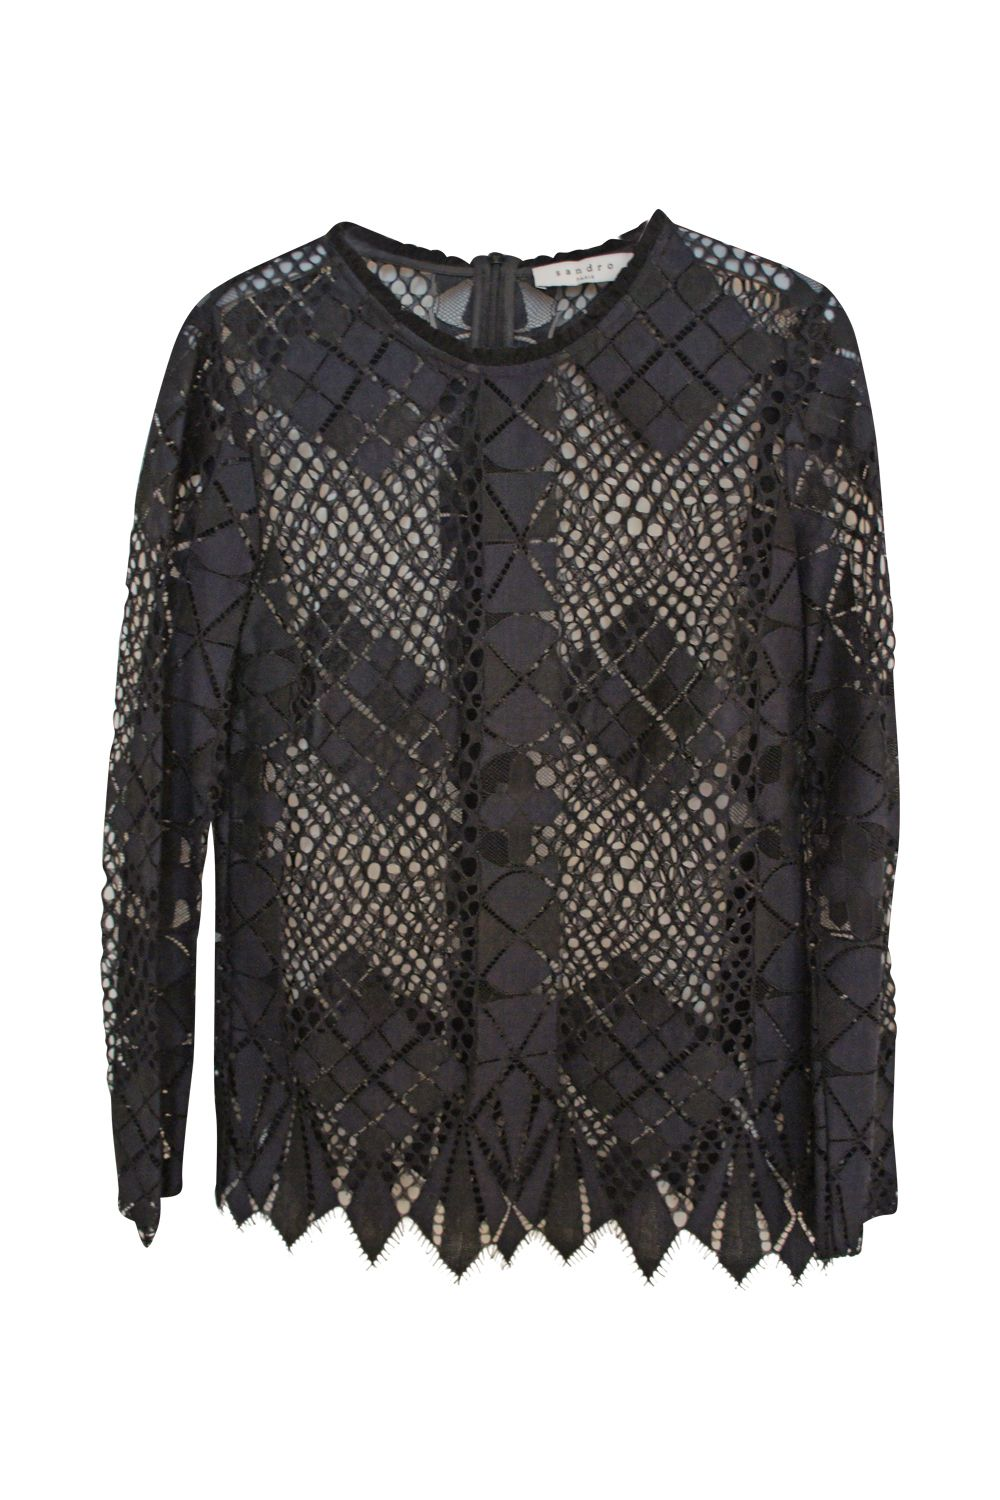 Sandro Long Sleeve Black Blouse Preview Images